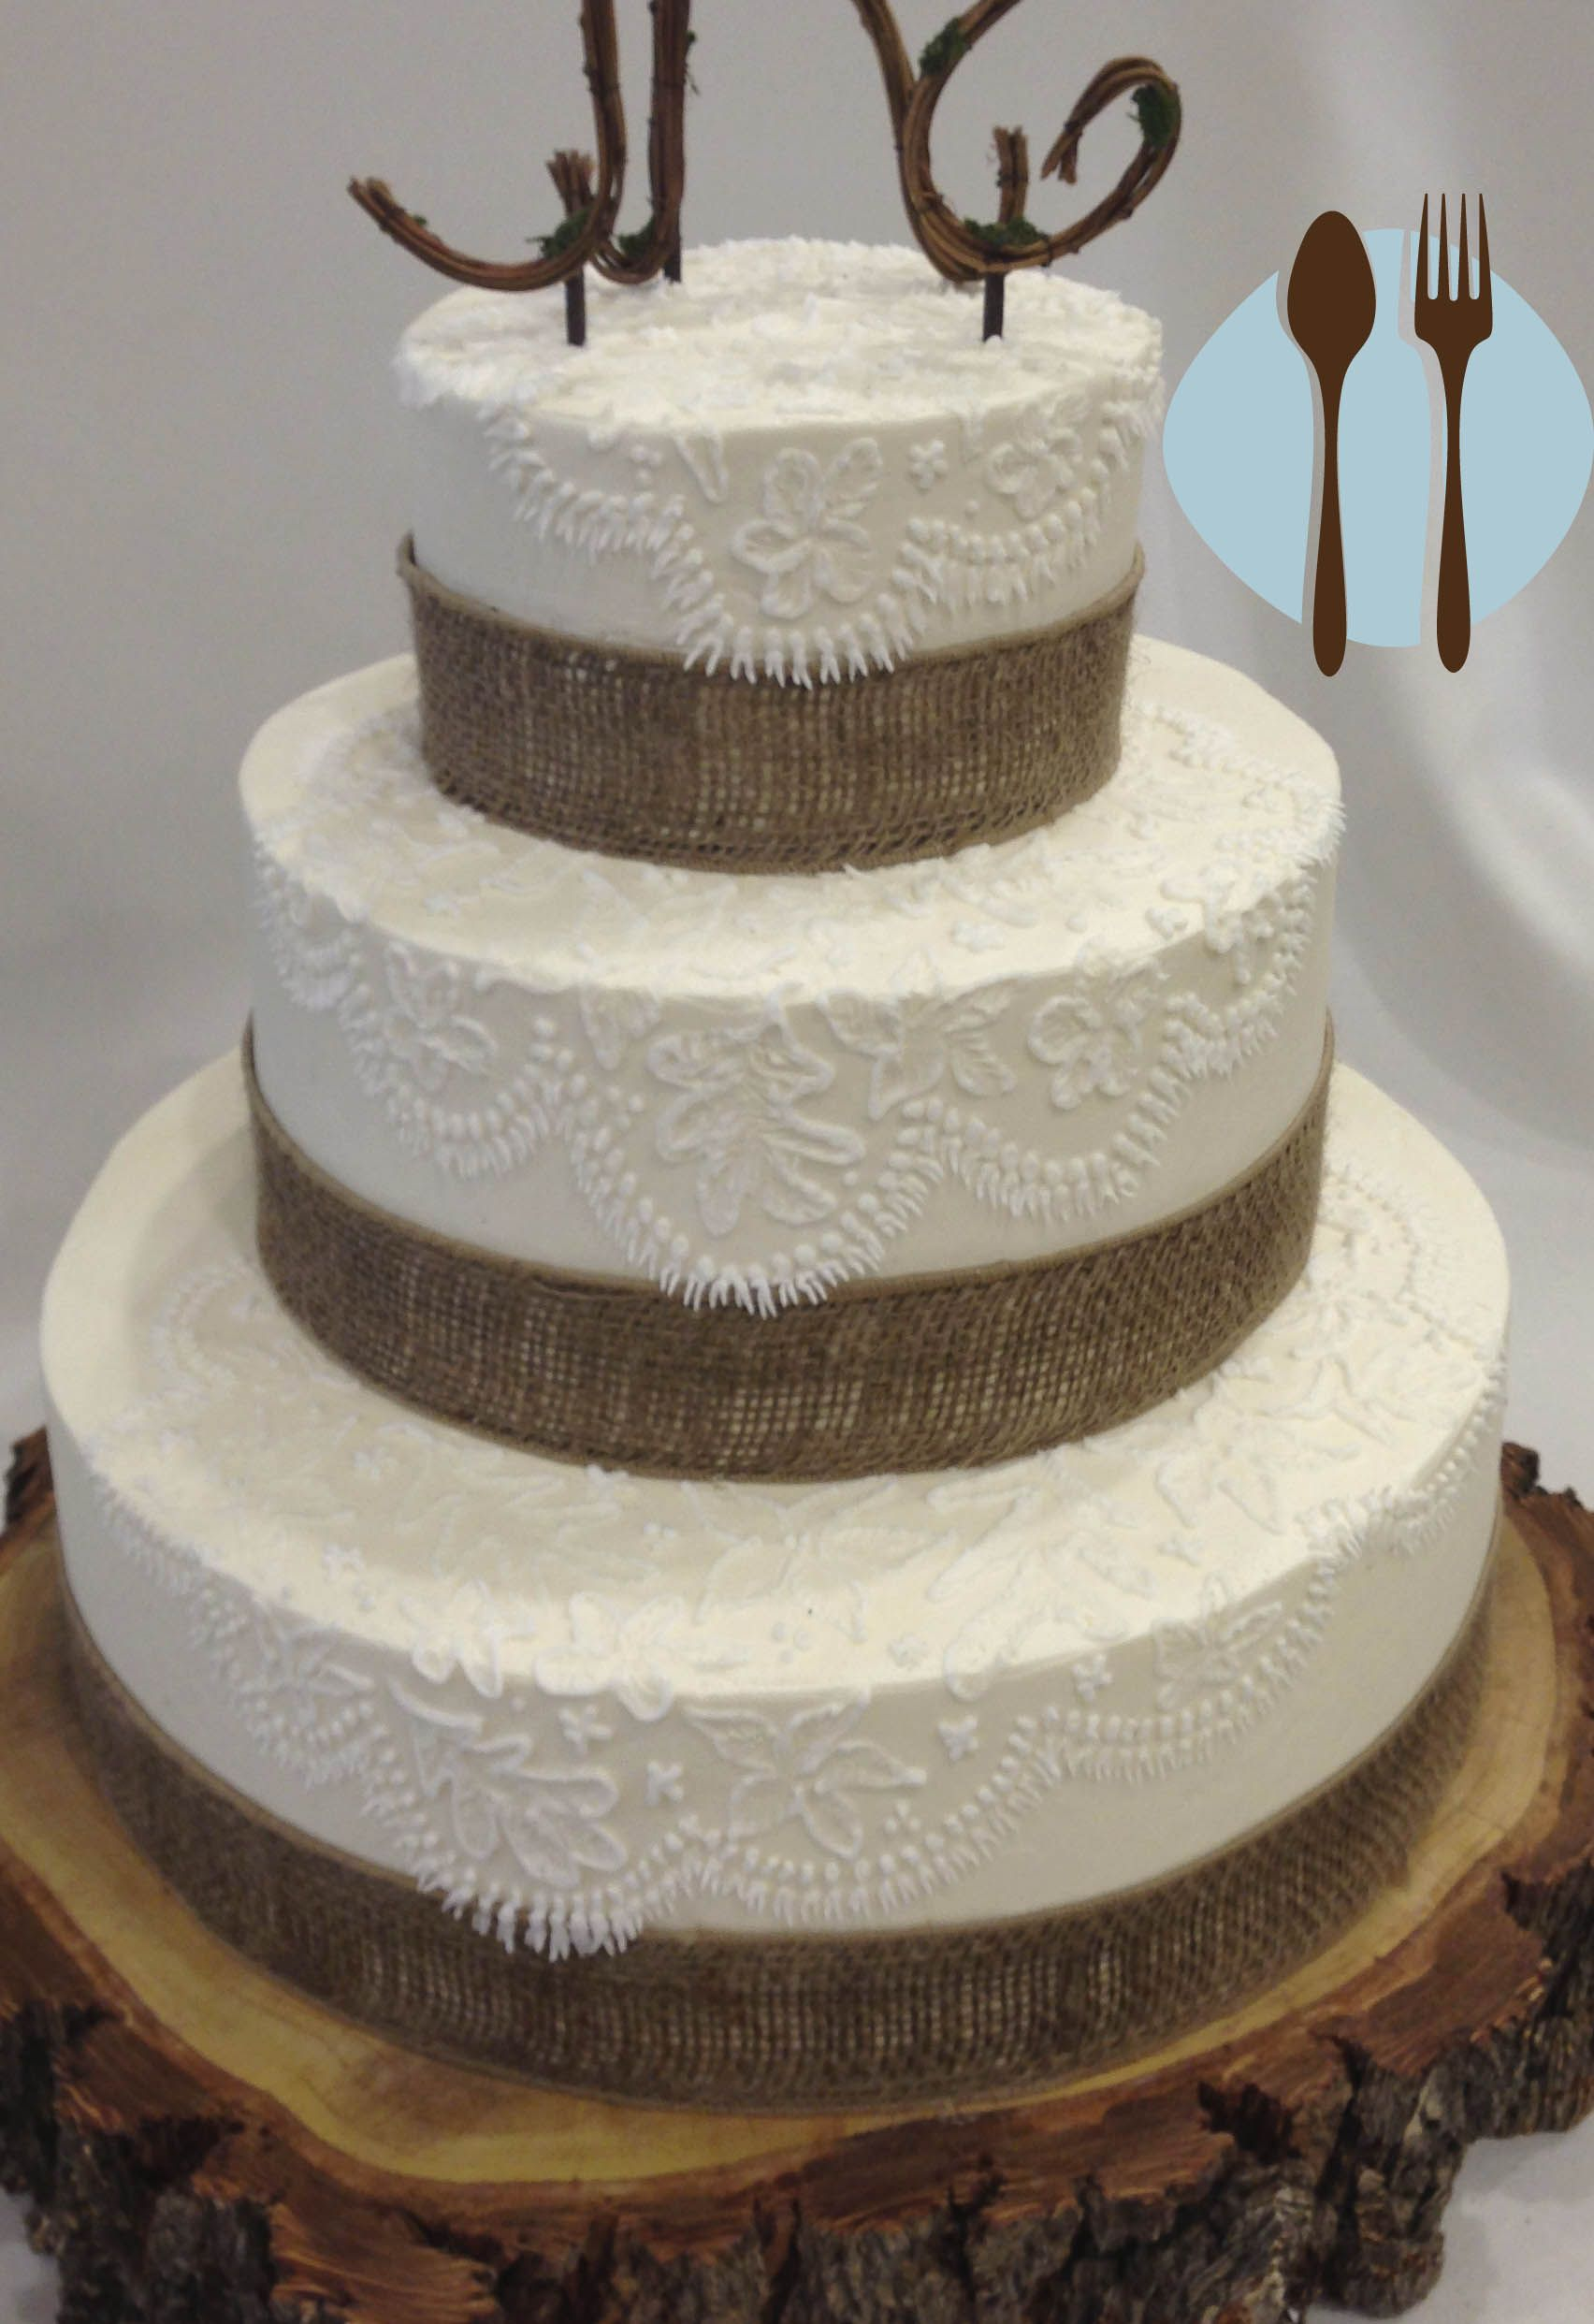 Burlap and lace country chic wedding cake on a log stand